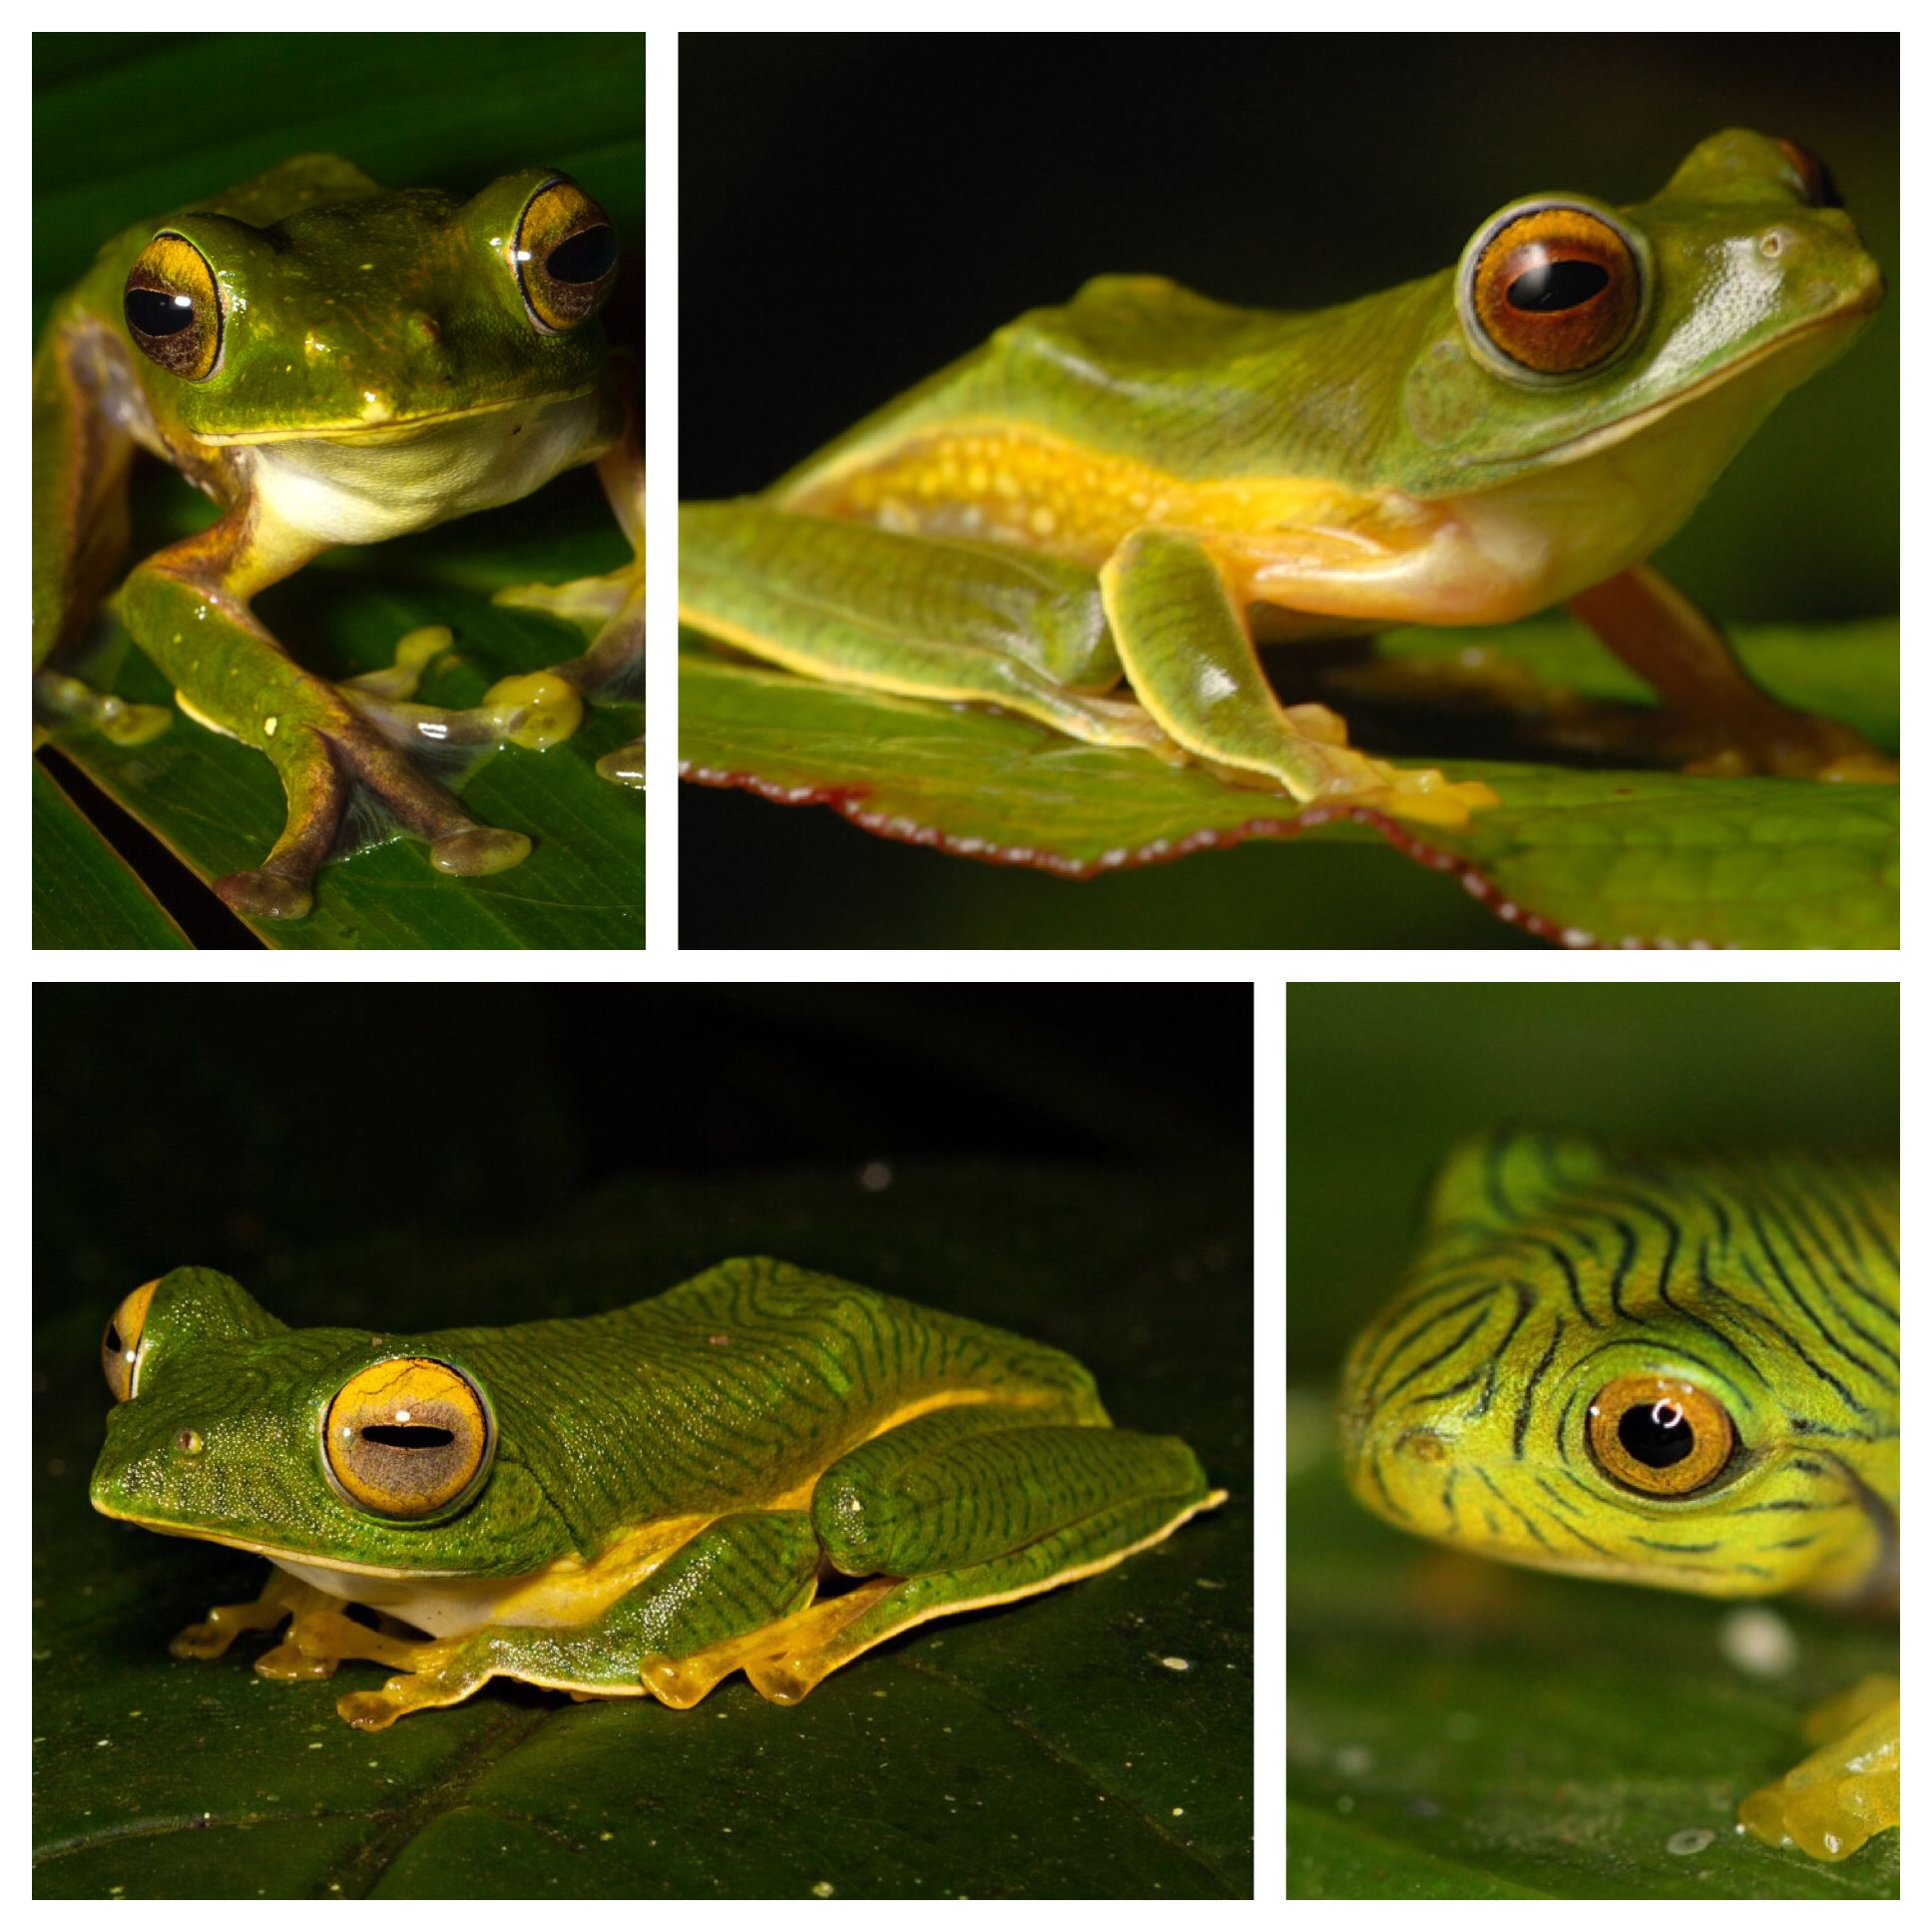 Rhacophorus pseudomalabaricus is a species of frog in the